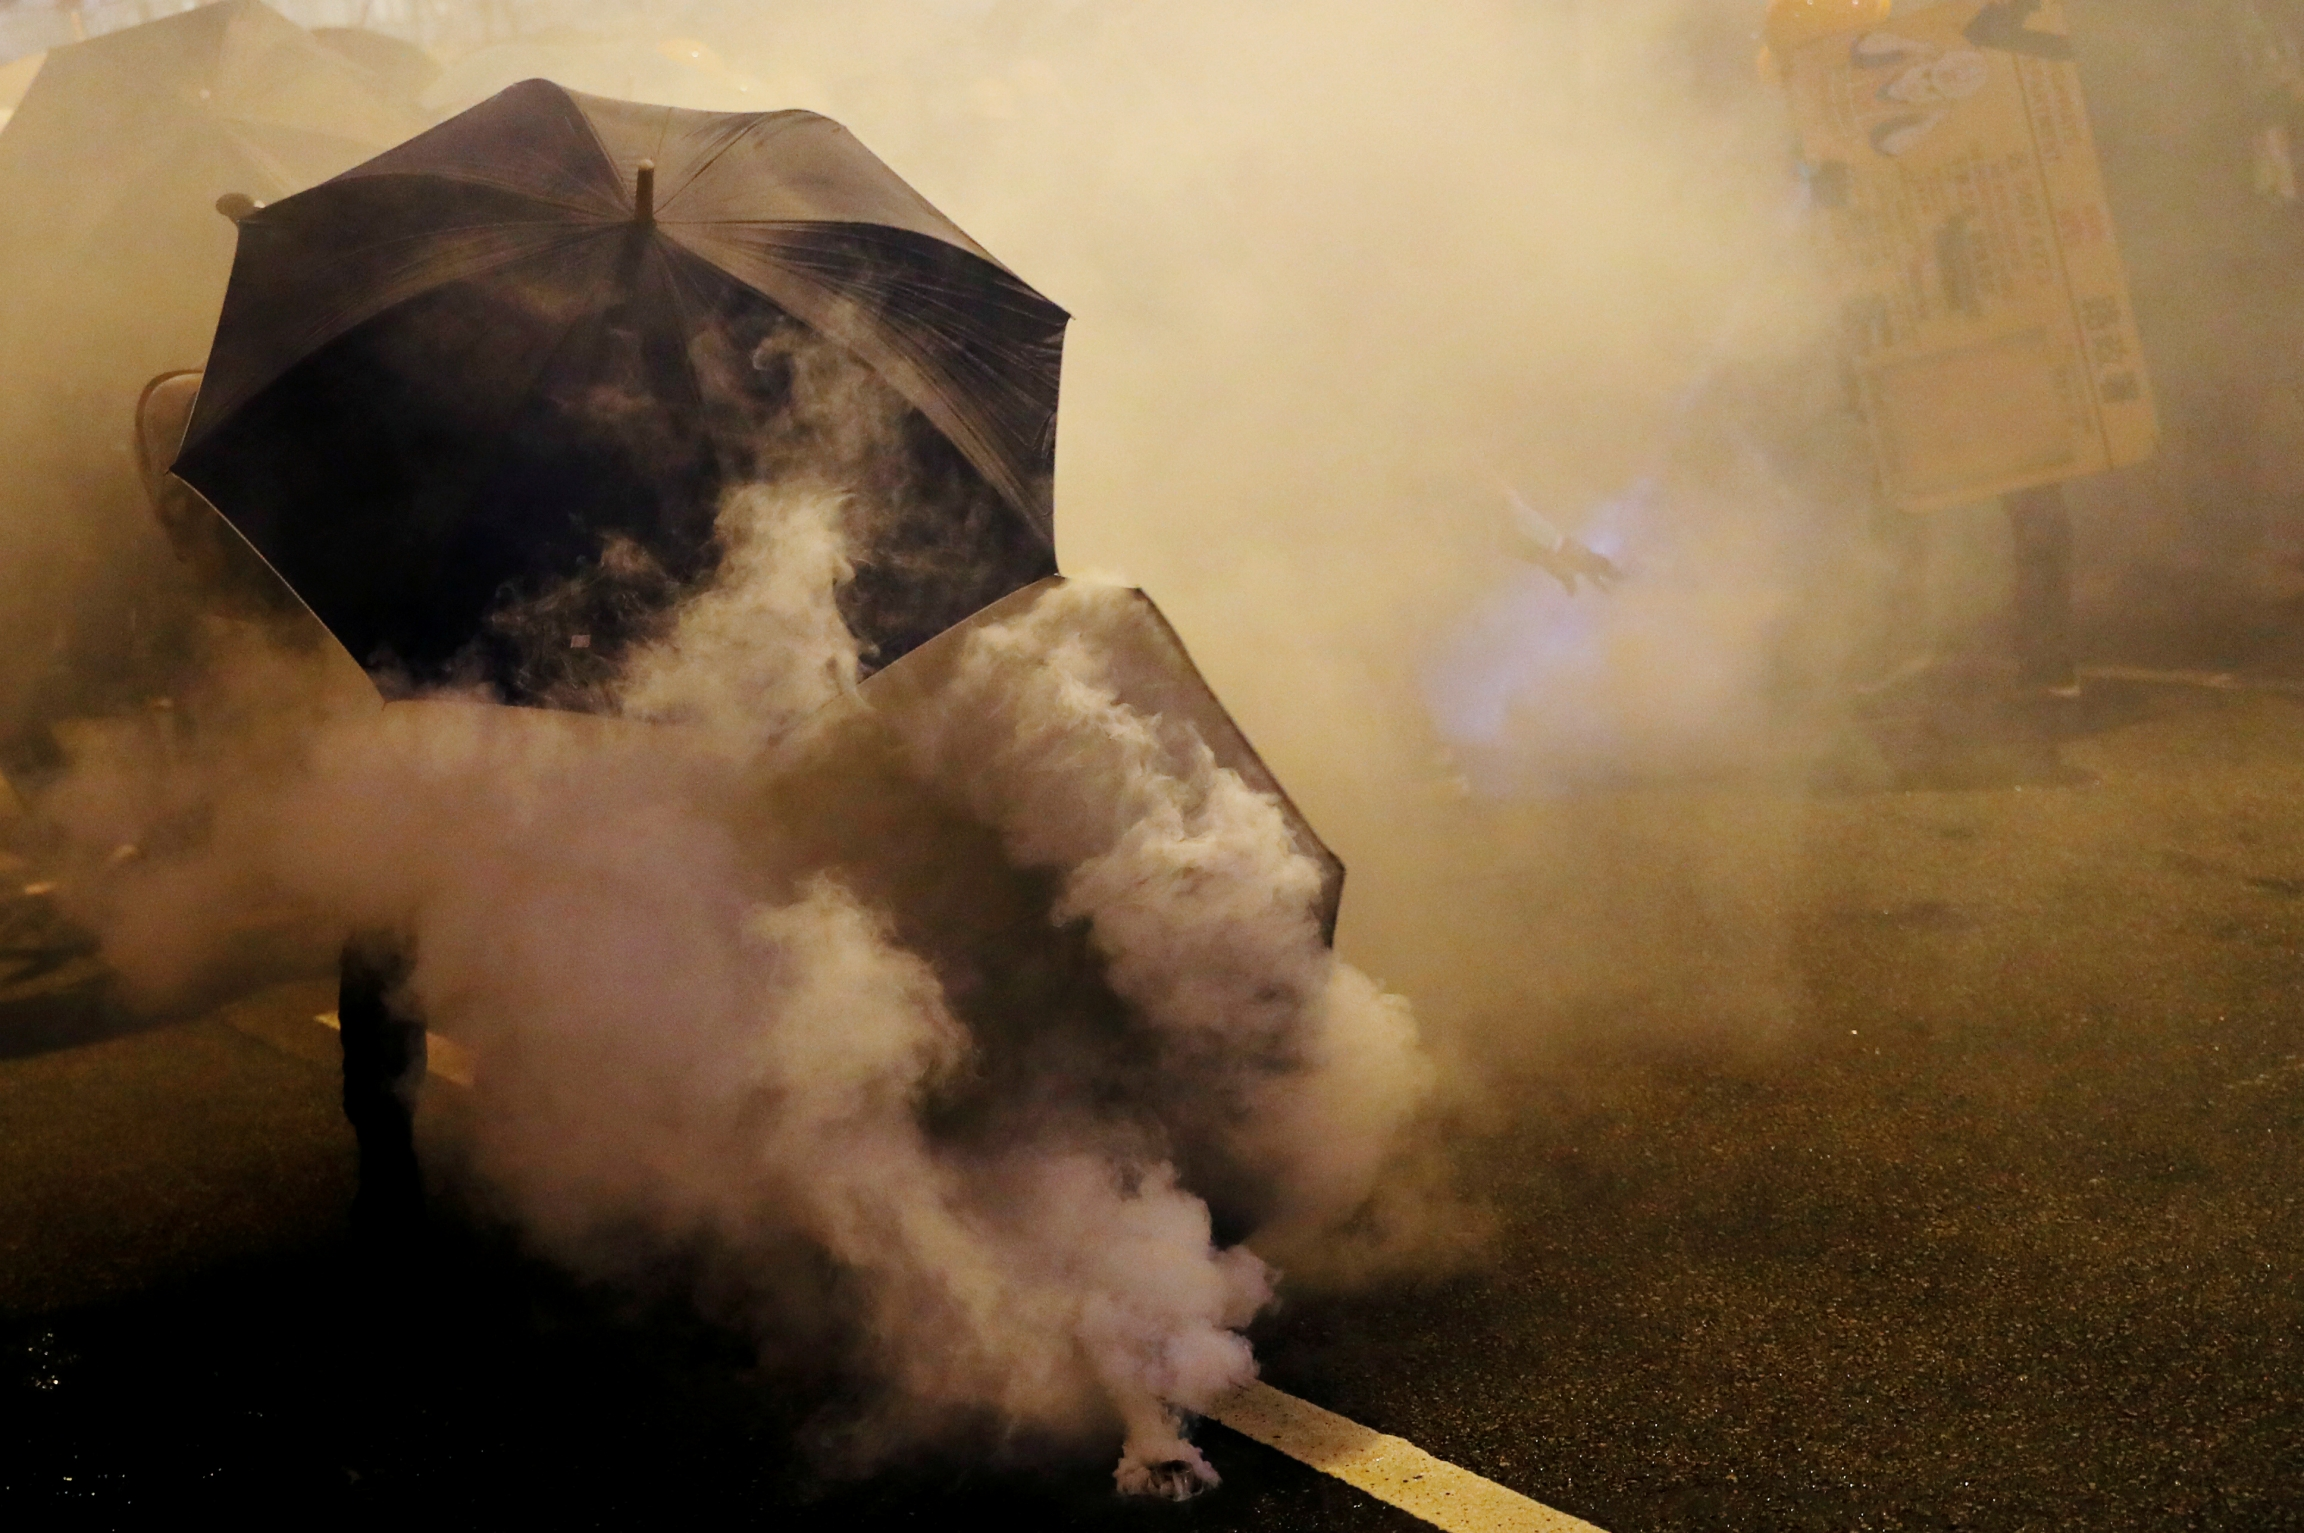 Protesters hold umbrellas in thick tear gas.